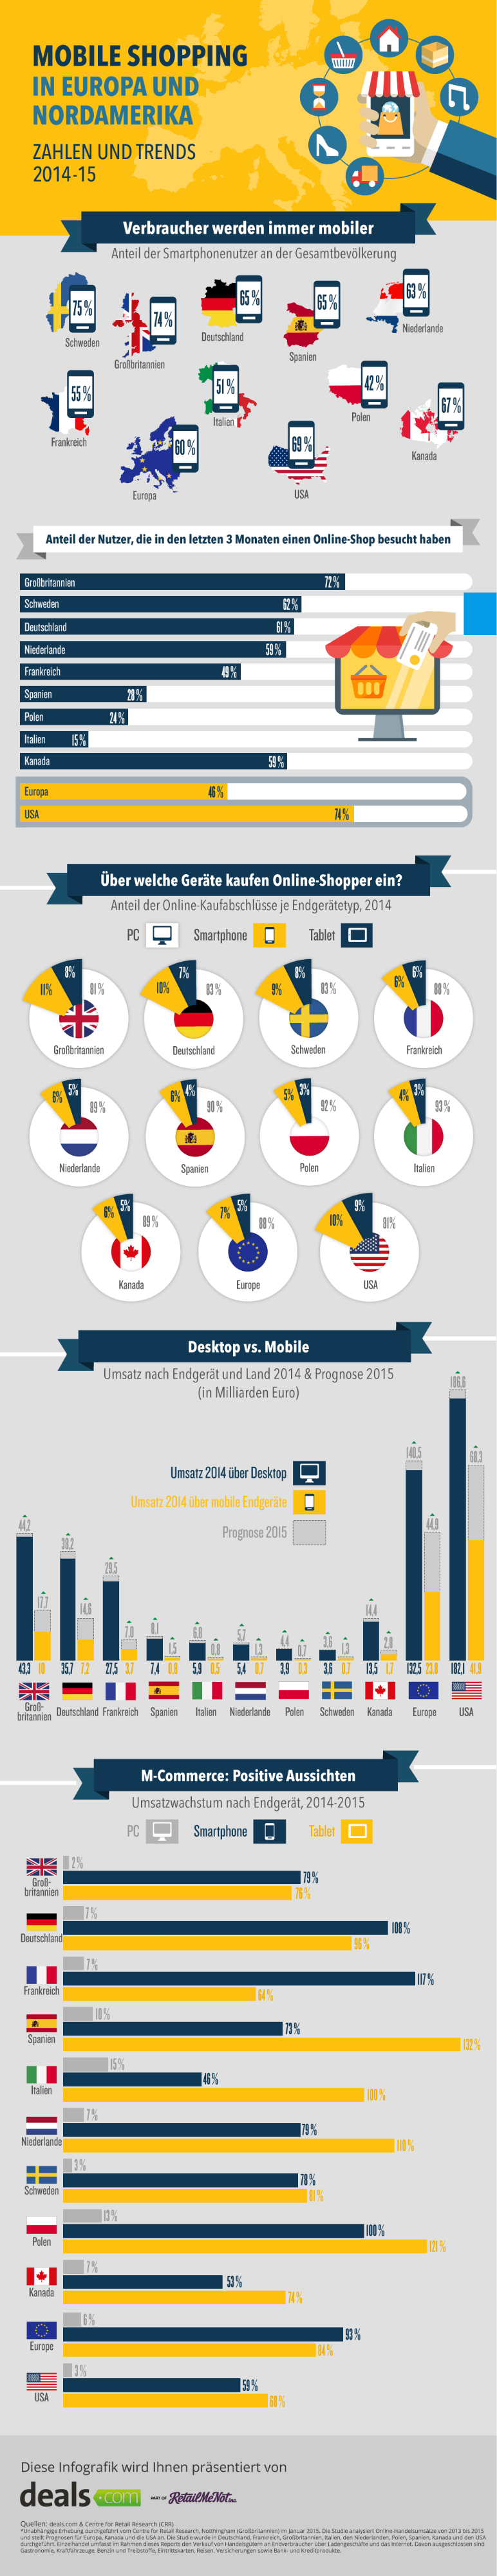 Infografik Mobile Shopping in Eurpoa und Nordamerika